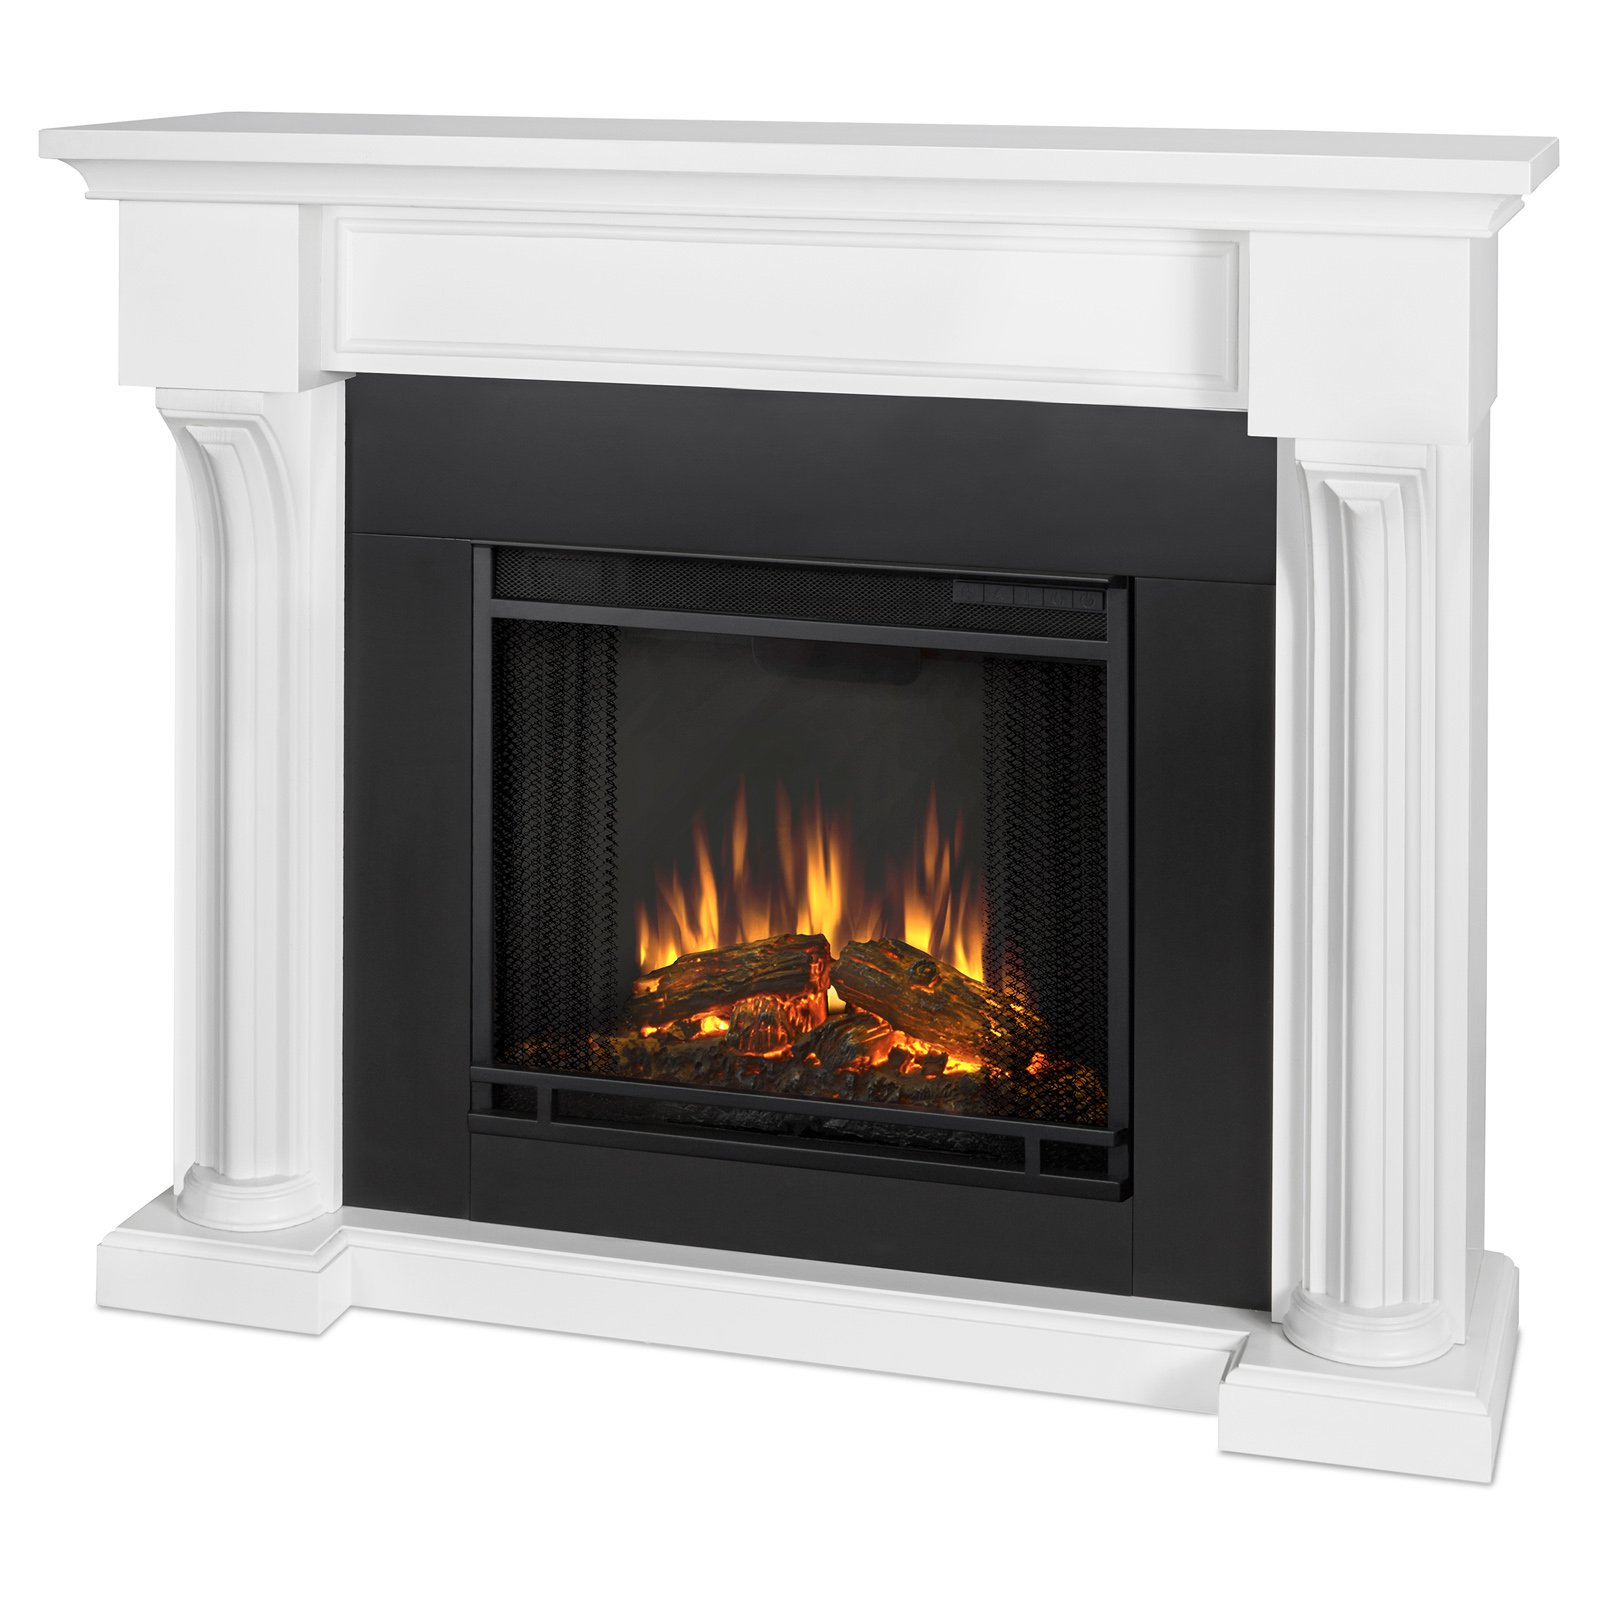 real flame electric fireplace  walmartcom -